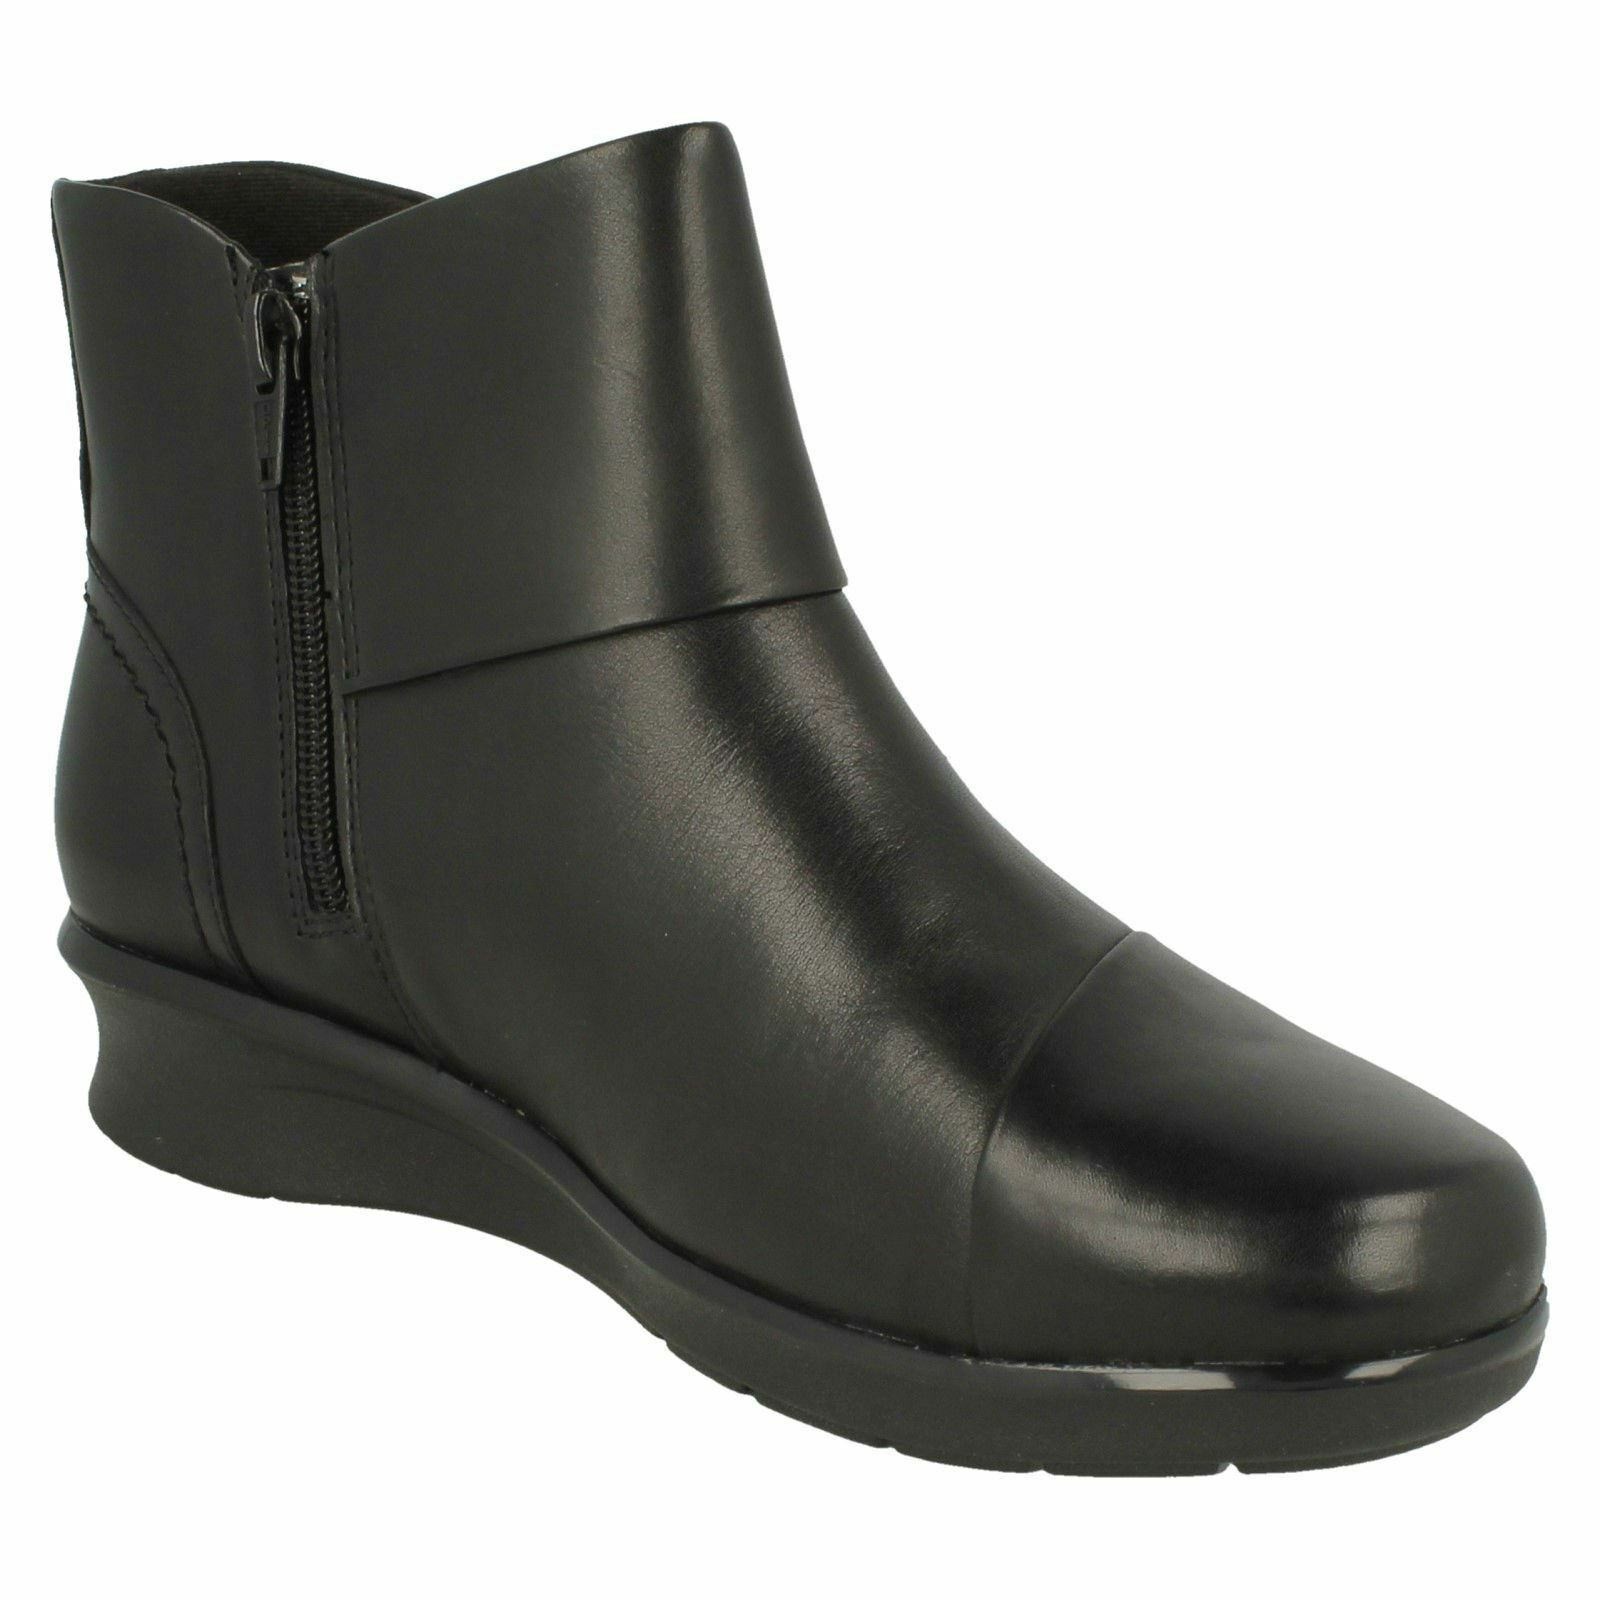 'Ladies Clarks' Ankle Boots Boots Boots -Hope Track 4b5e4d